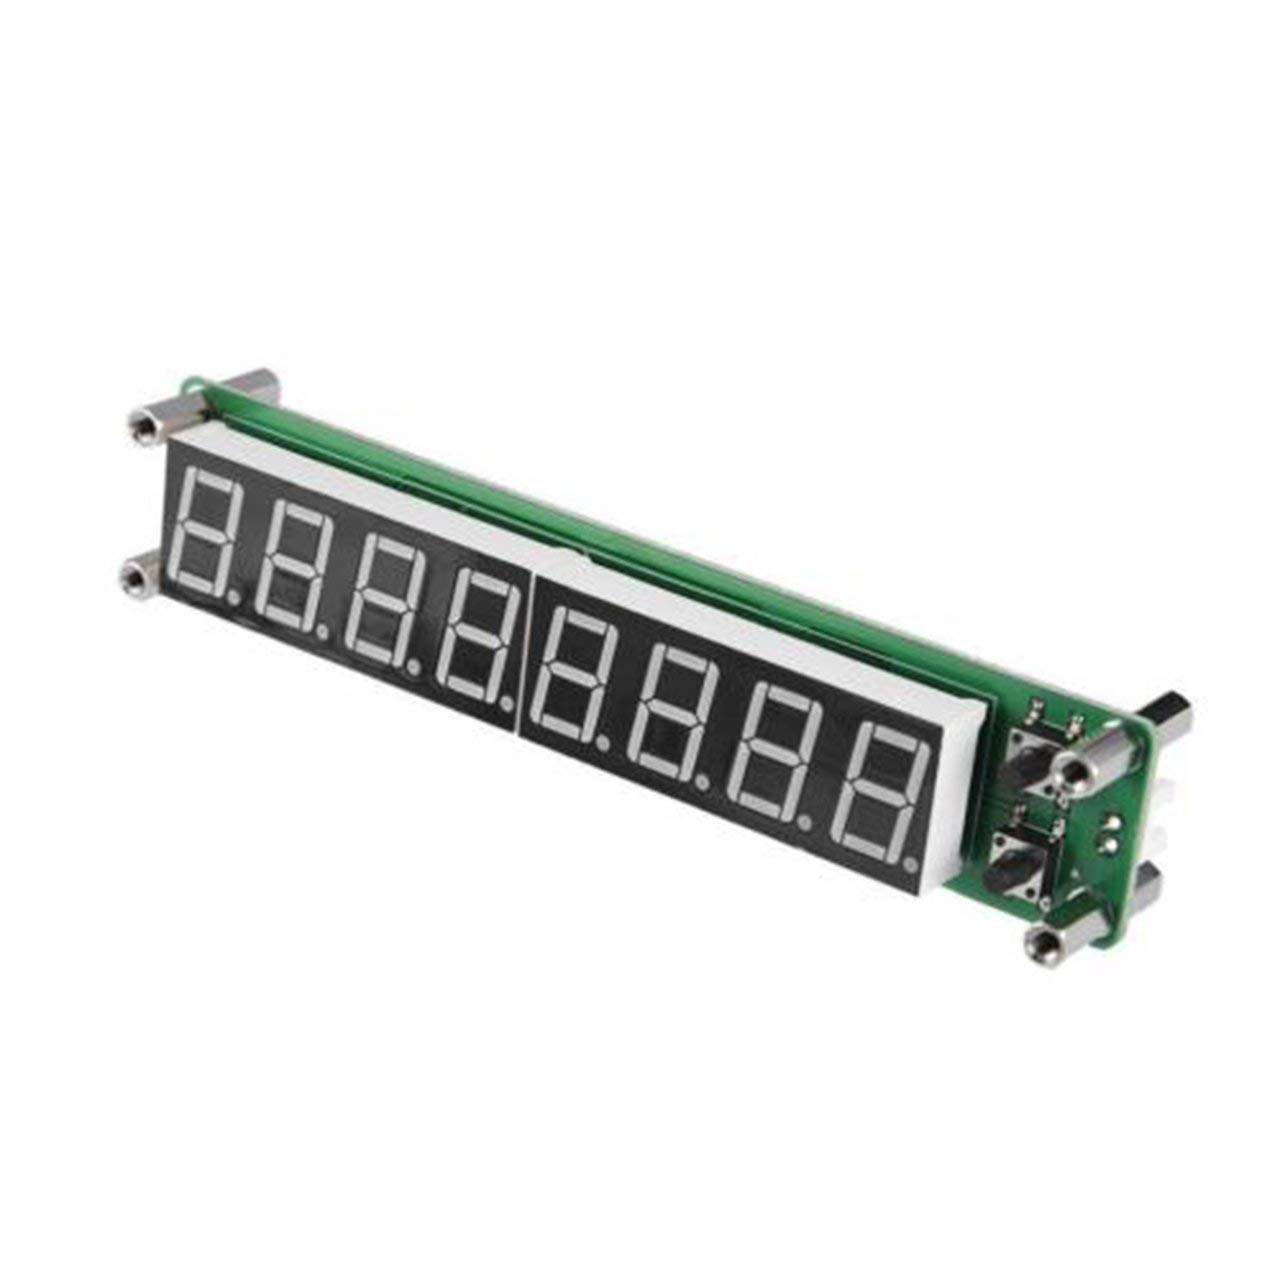 PLJ-8LED-H RF Signal Frequency Counter Cymometer Tester Module 0.1~1000MHz by NeanTak-us